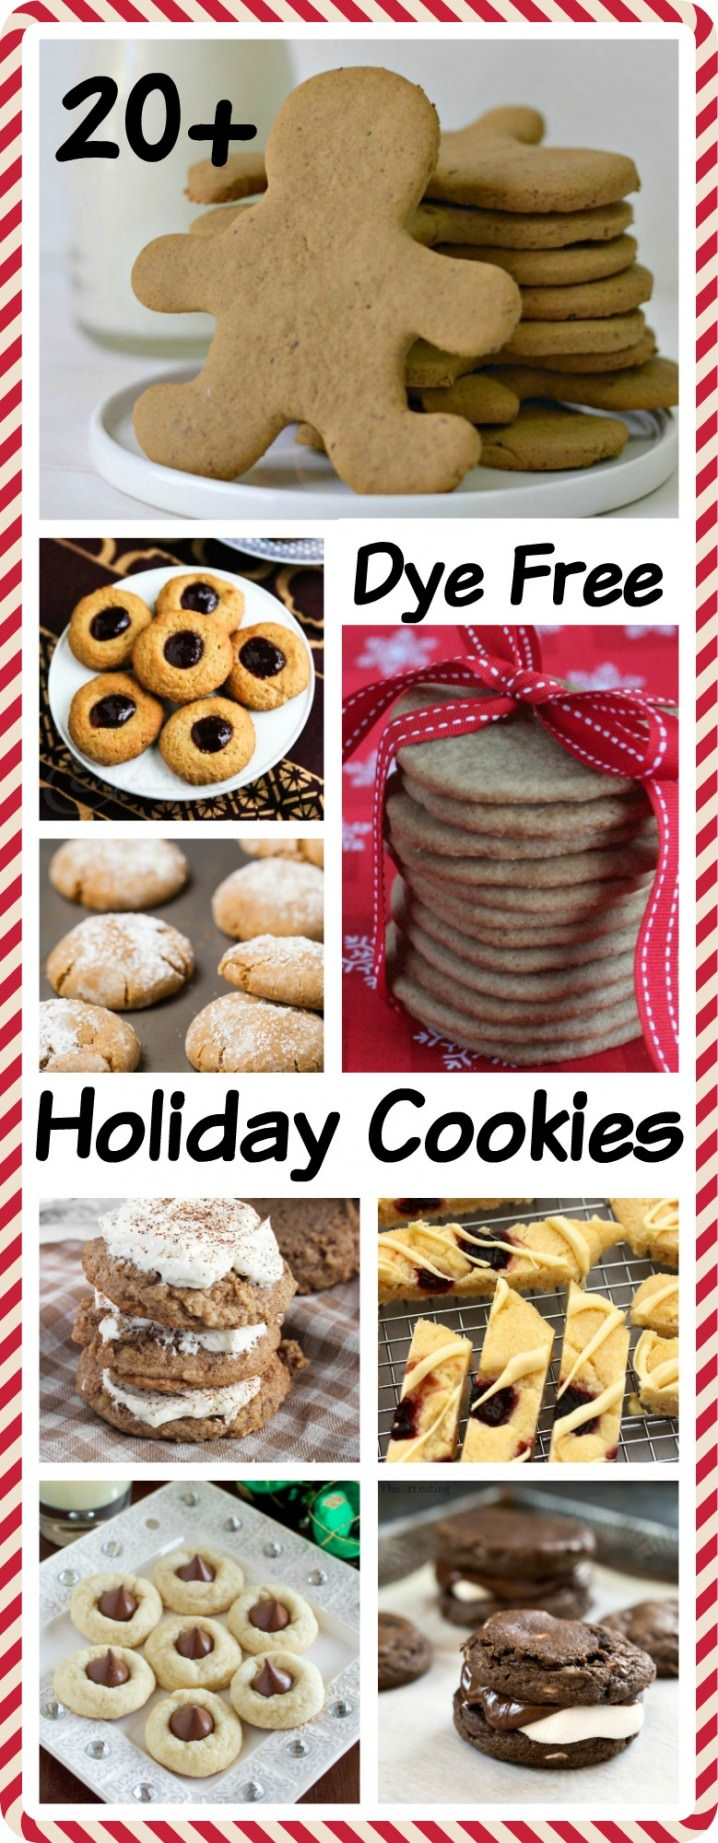 Over 20 Dye Free Holiday Cookies - Get the recipes from @itsyummi